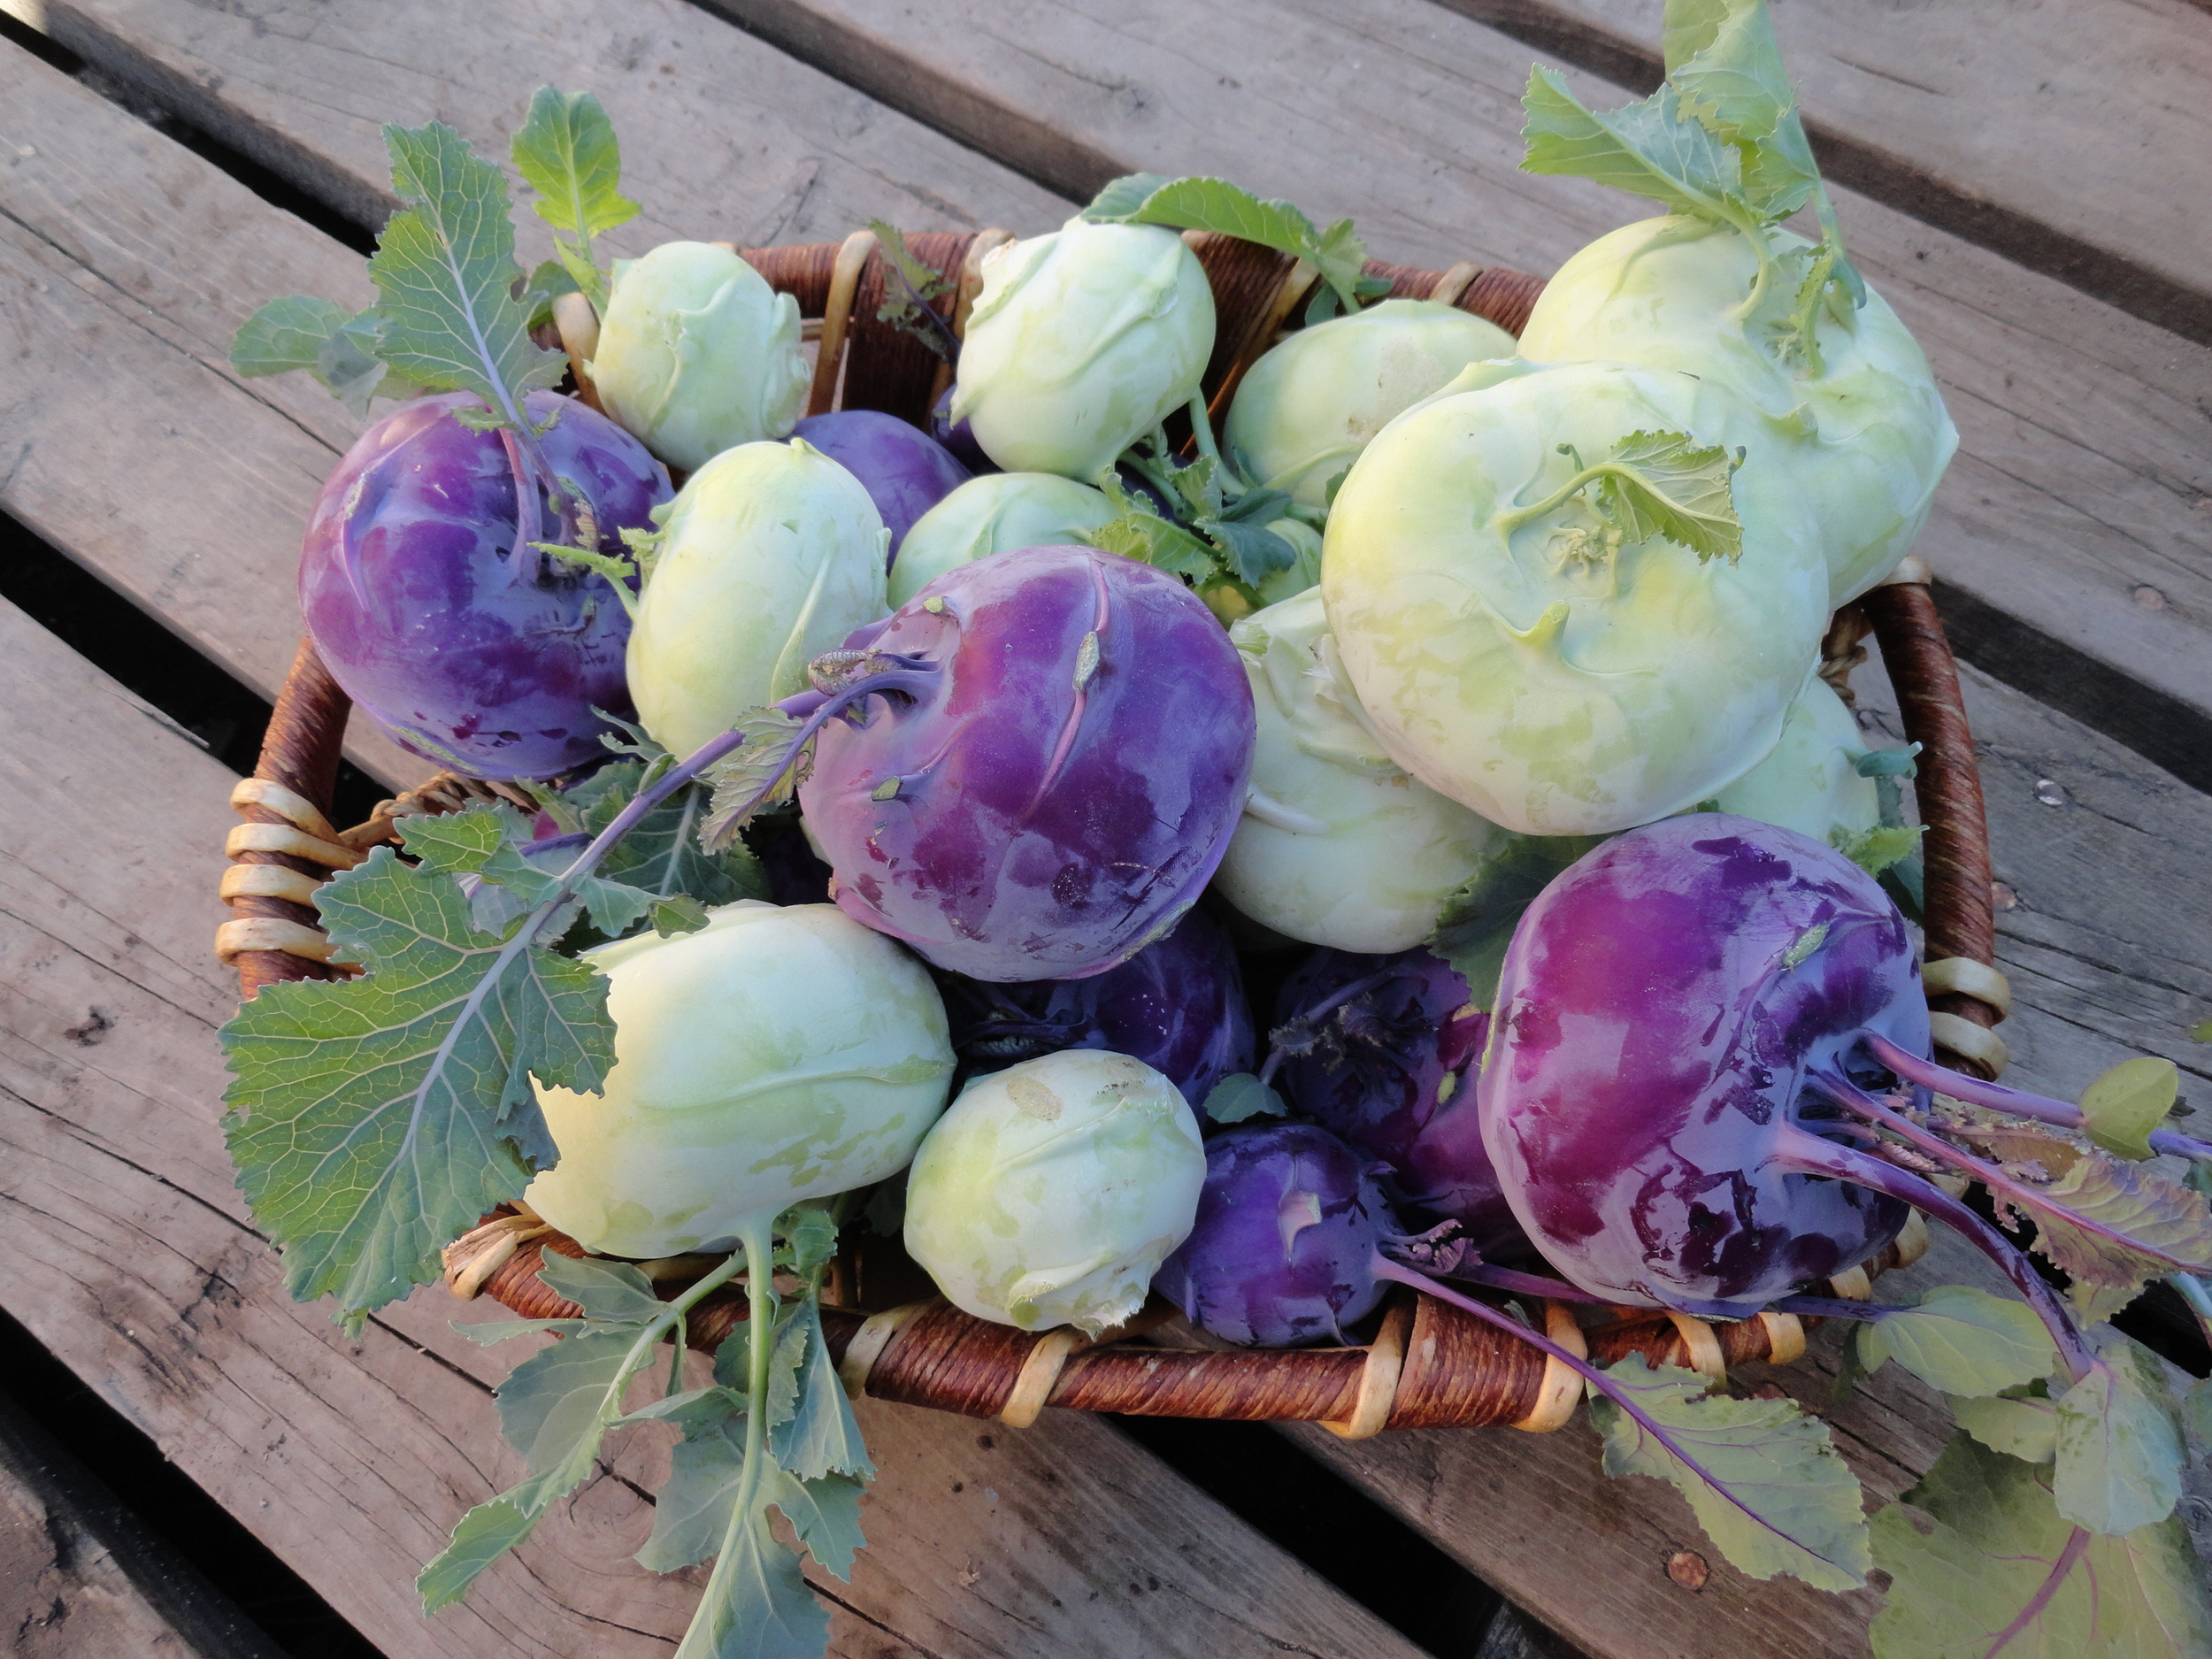 we'll have both green and purple kohlrabi